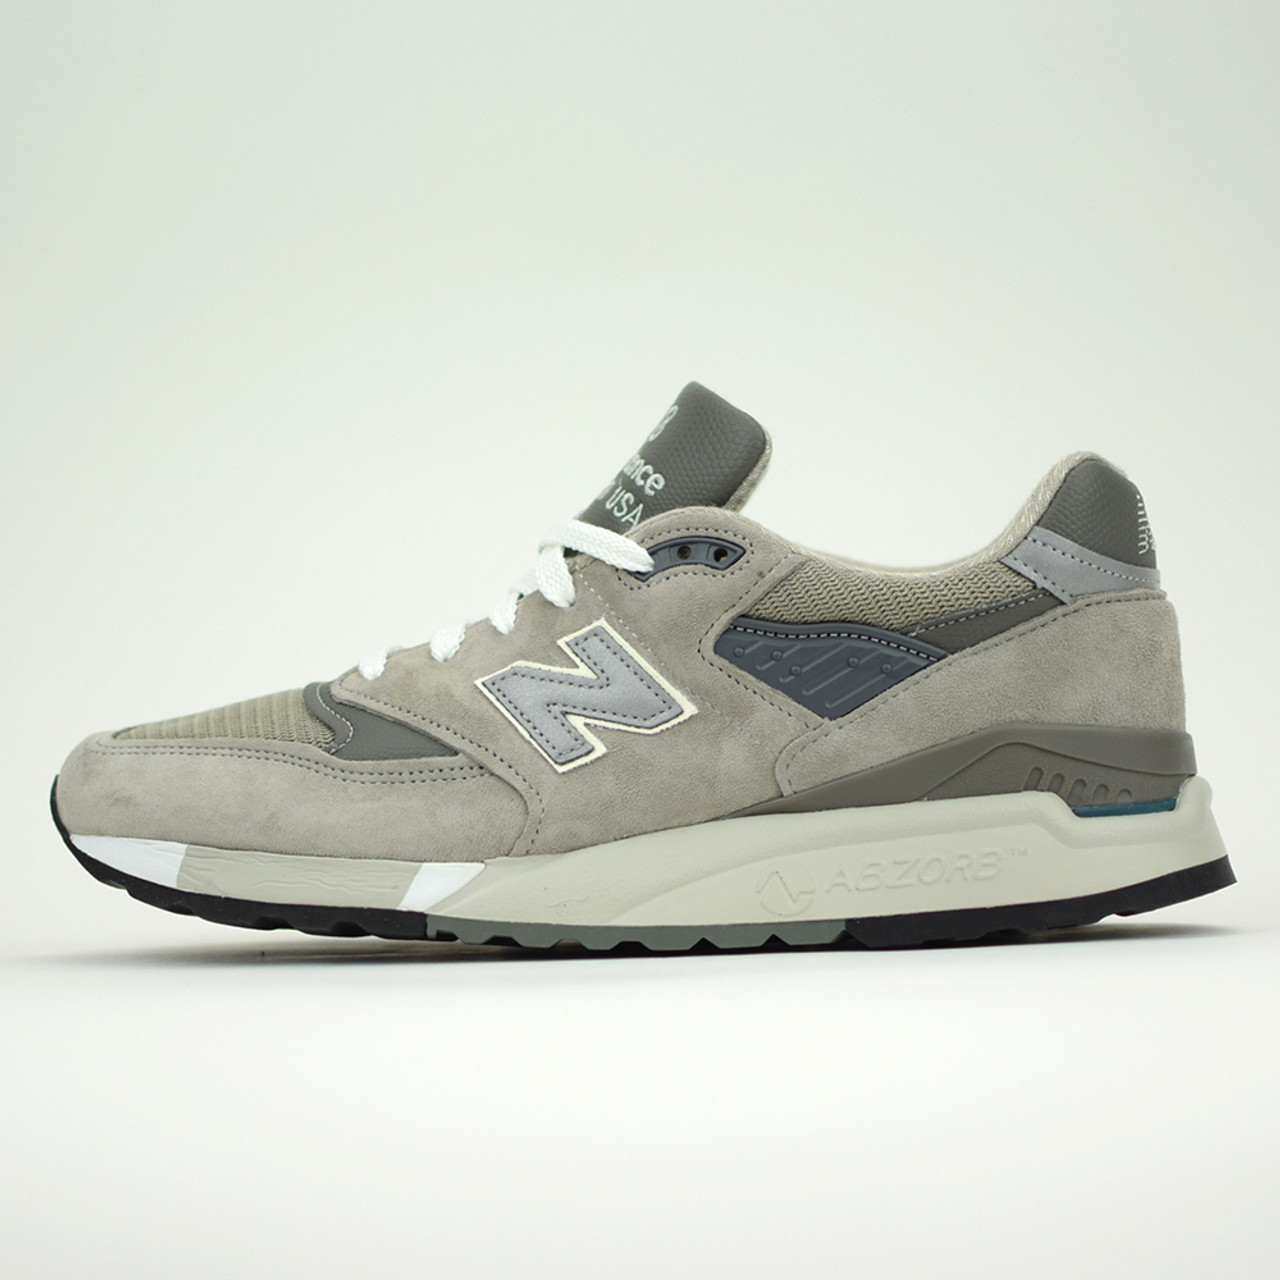 998 made in usa